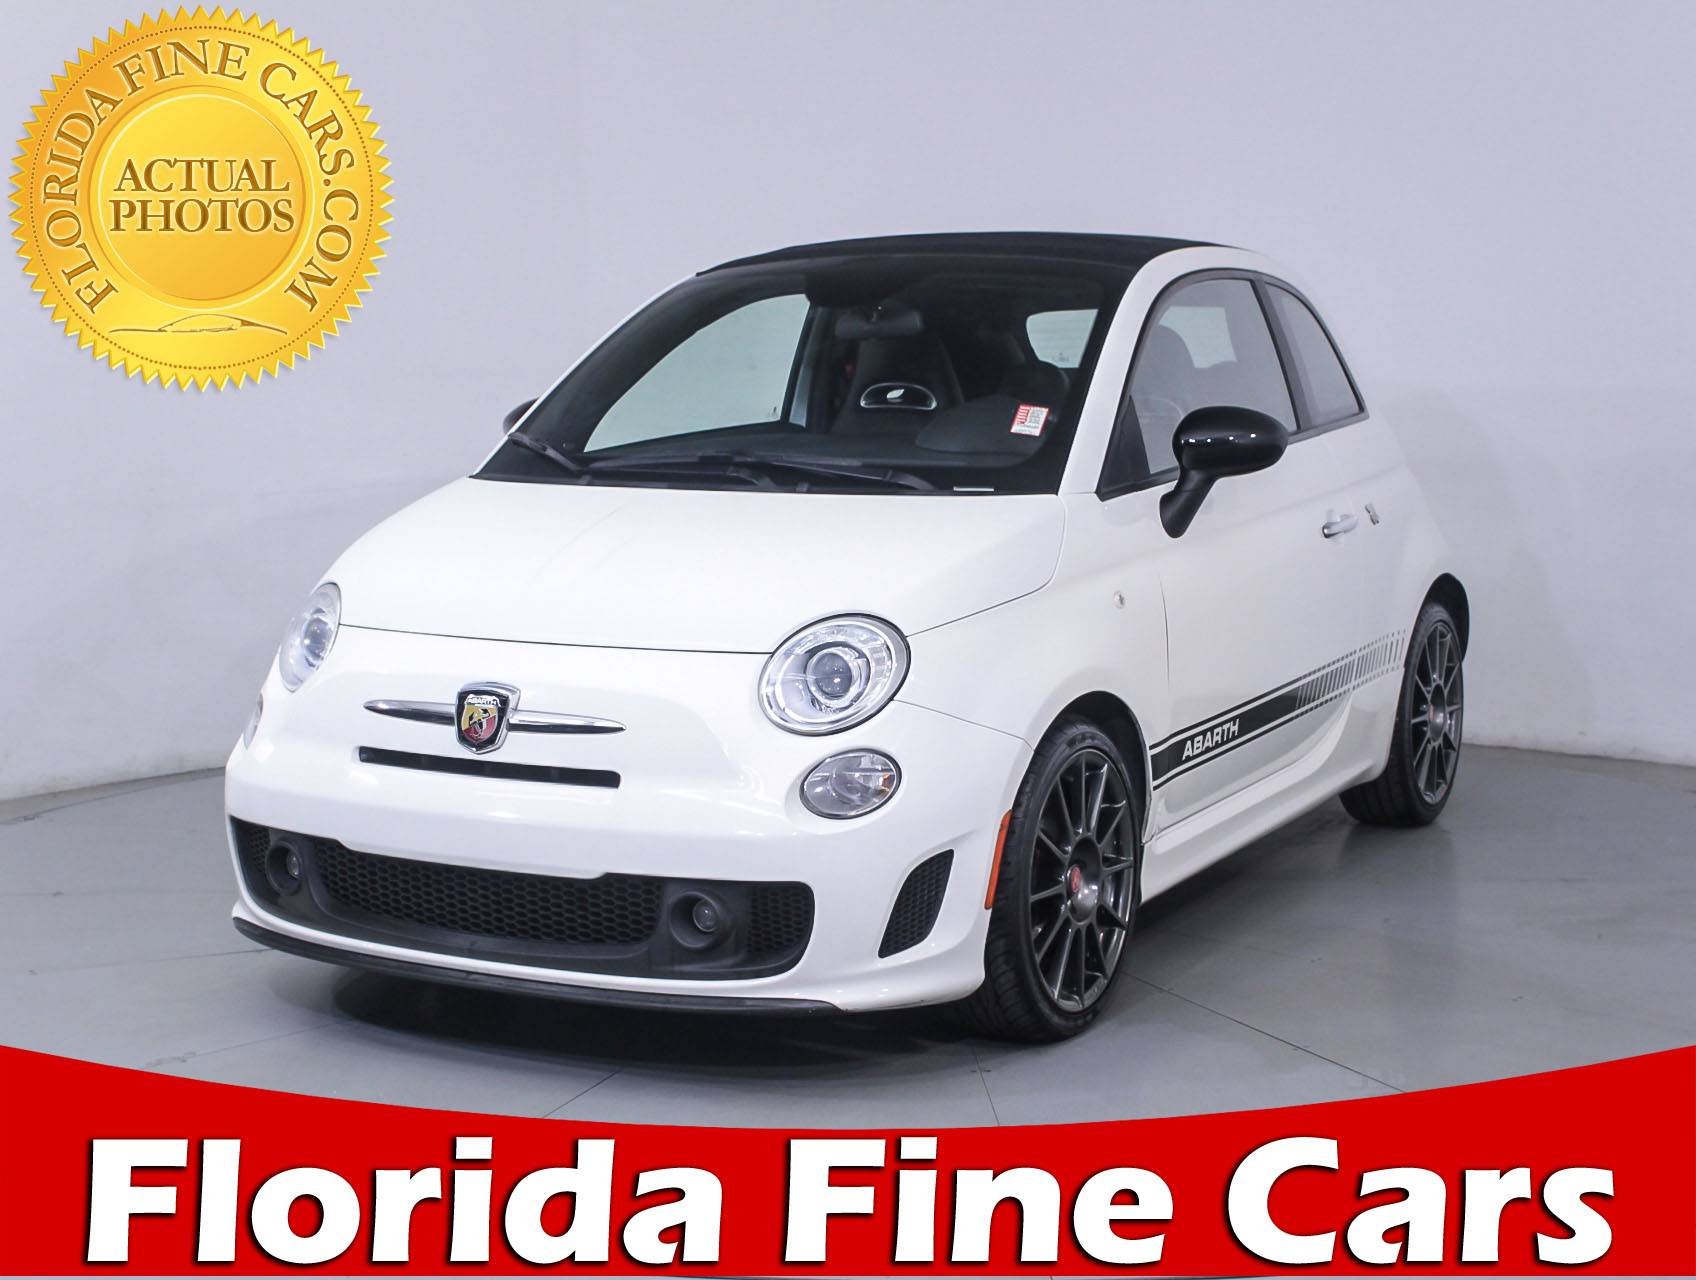 Used 2013 FIAT 500 ABARTH Convertible for sale in MIAMI FL